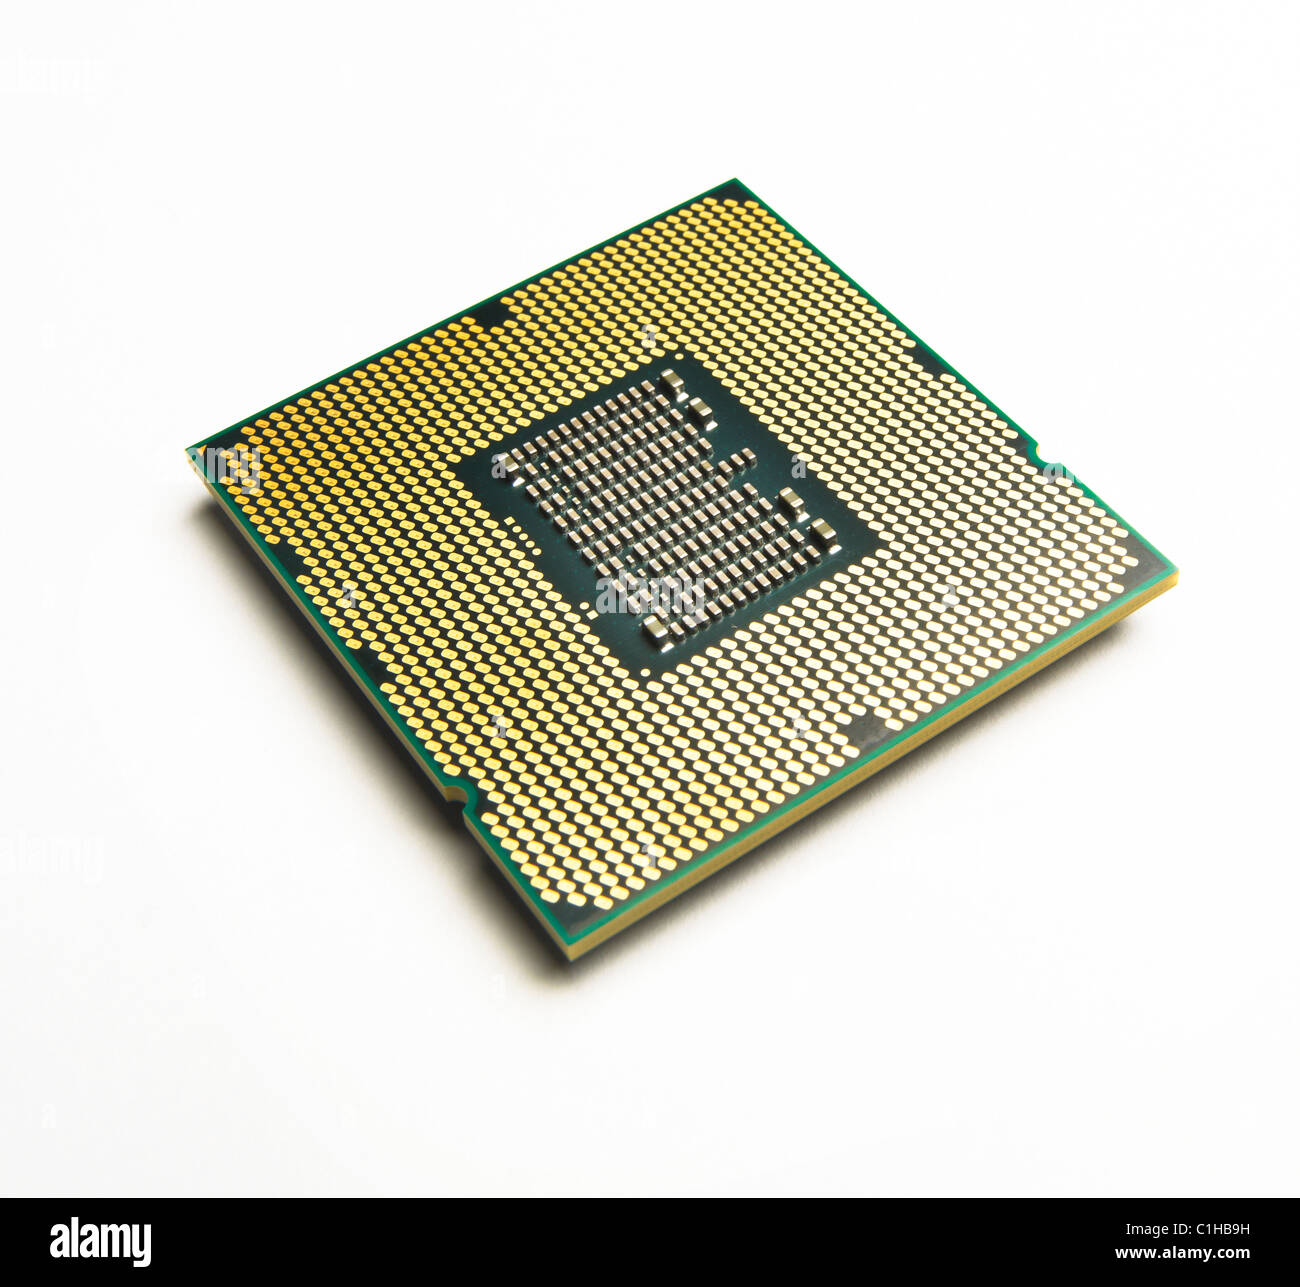 CPU - Stock Image